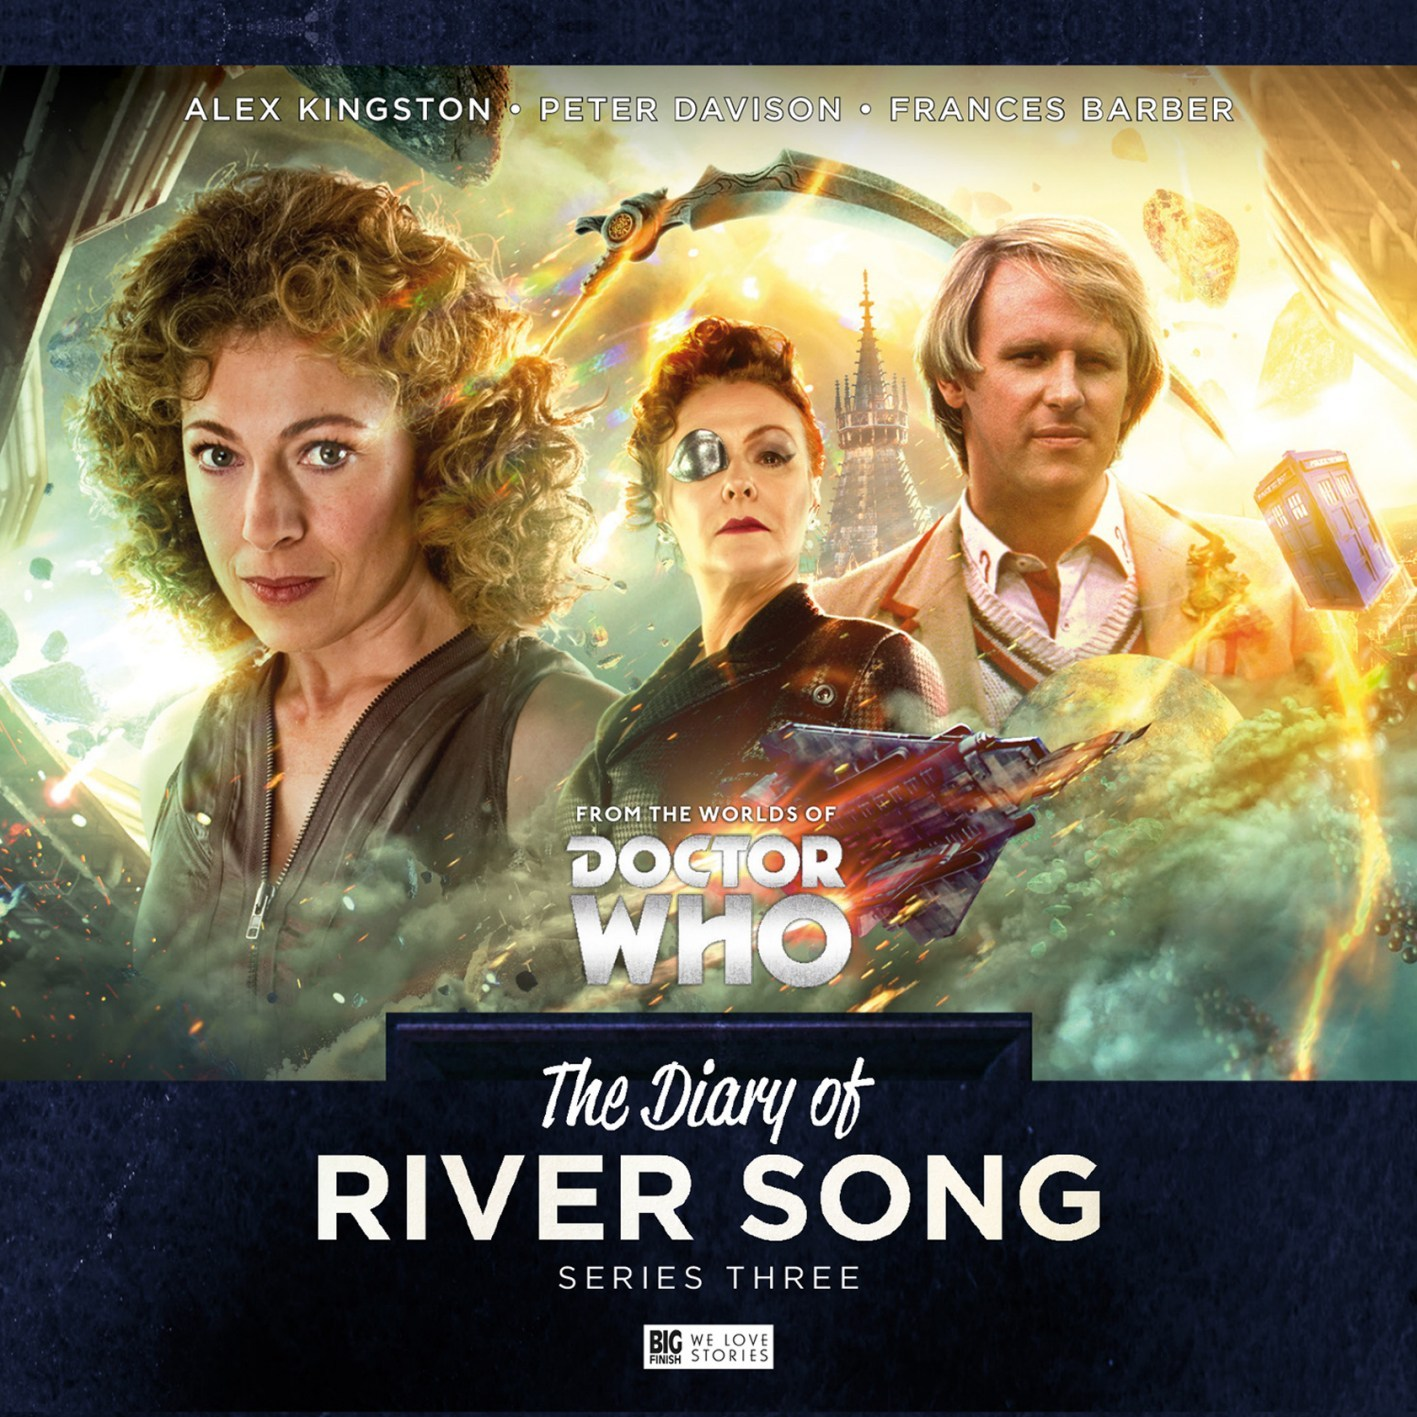 The Diary of River Song Series 3